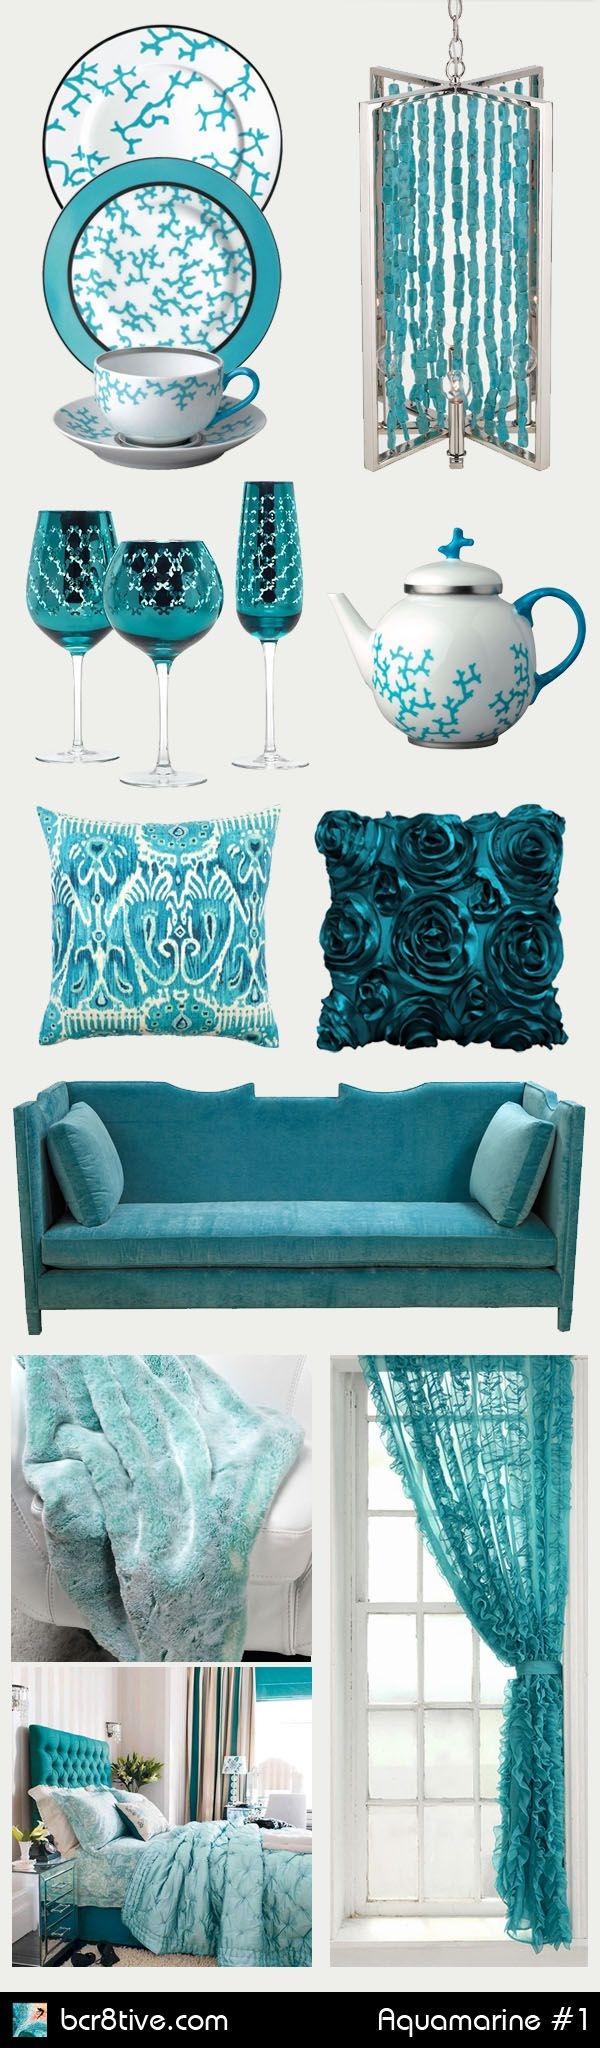 Aquamarine Turquoise Interior Design Home Decorating Products Turquoise Decorationsturquoise Home Decorturquoise